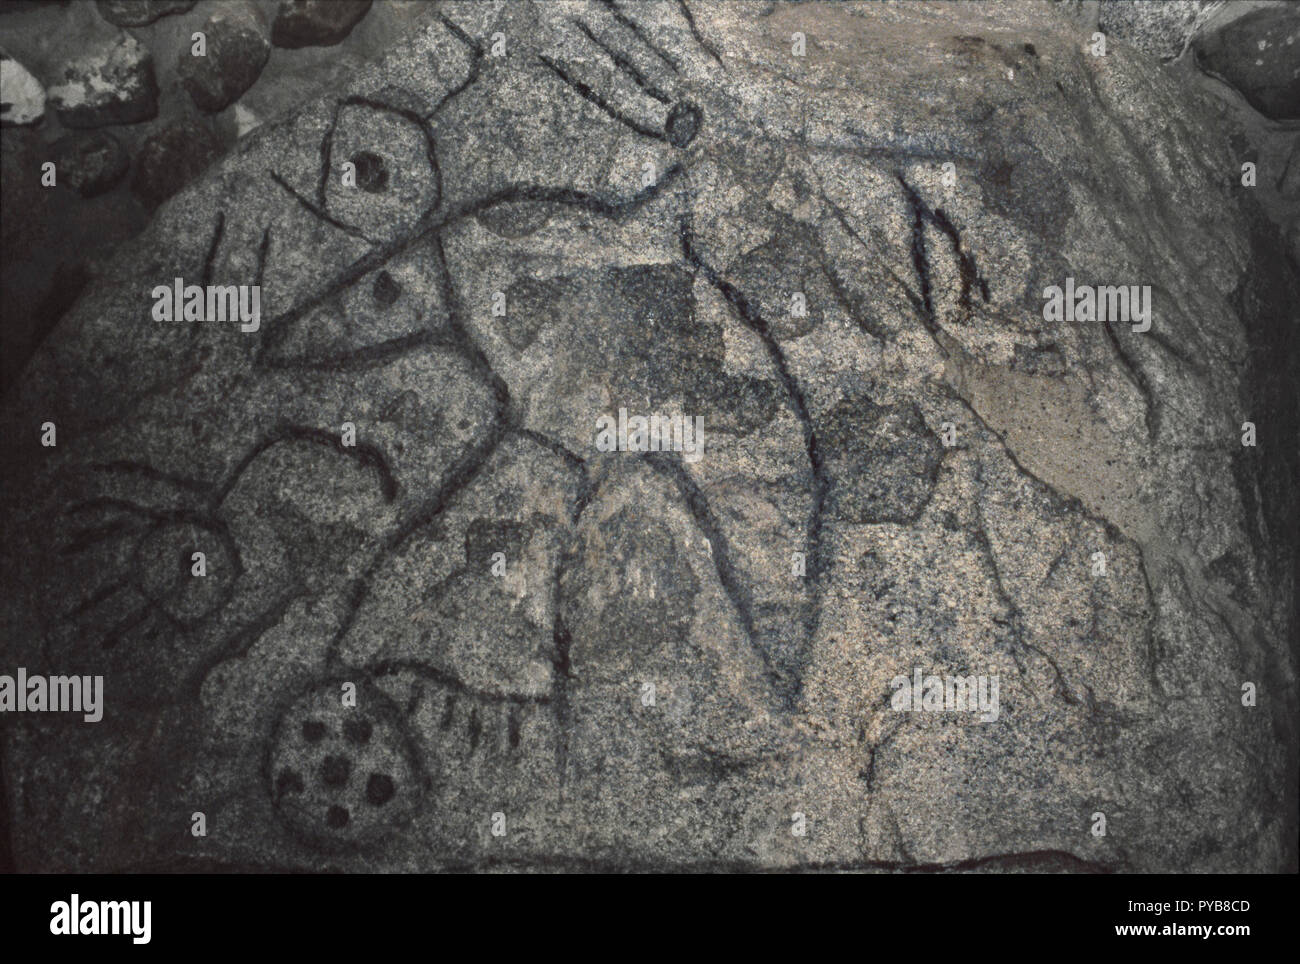 Writing Rock, Native American petroglyphs on granite, northwestern North Dakota. Photograph - Stock Image